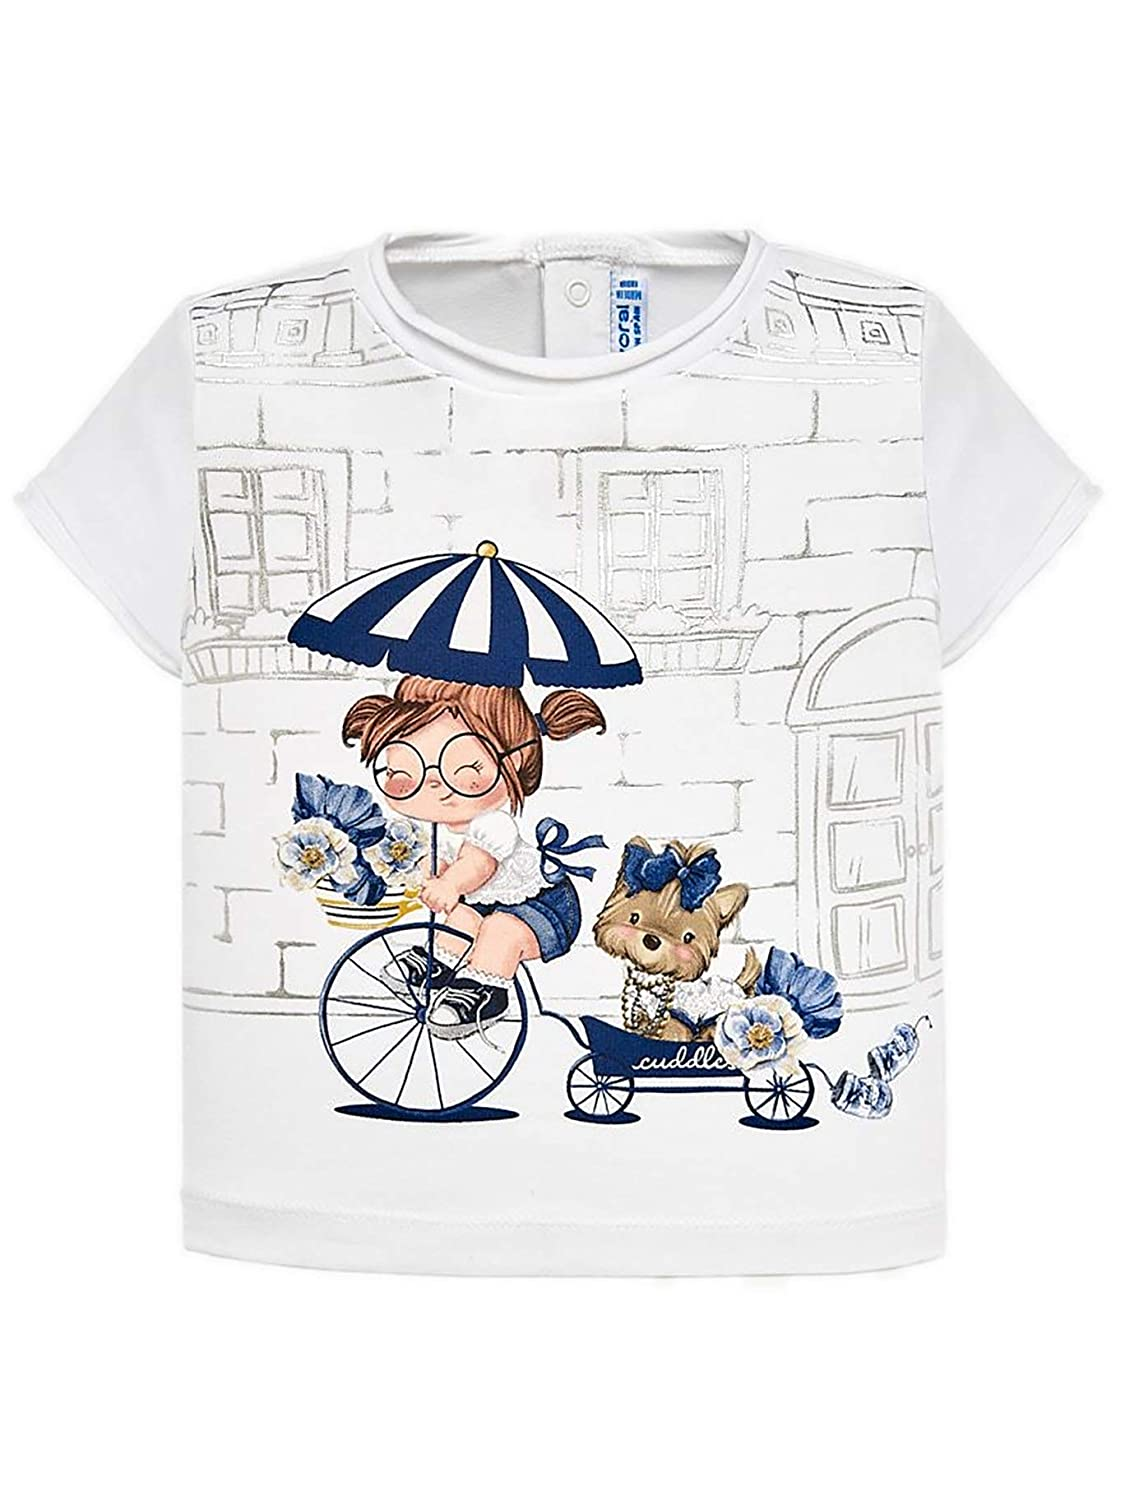 Whit-Navy 1010 S//s t-Shirt for Baby-Girls Mayoral